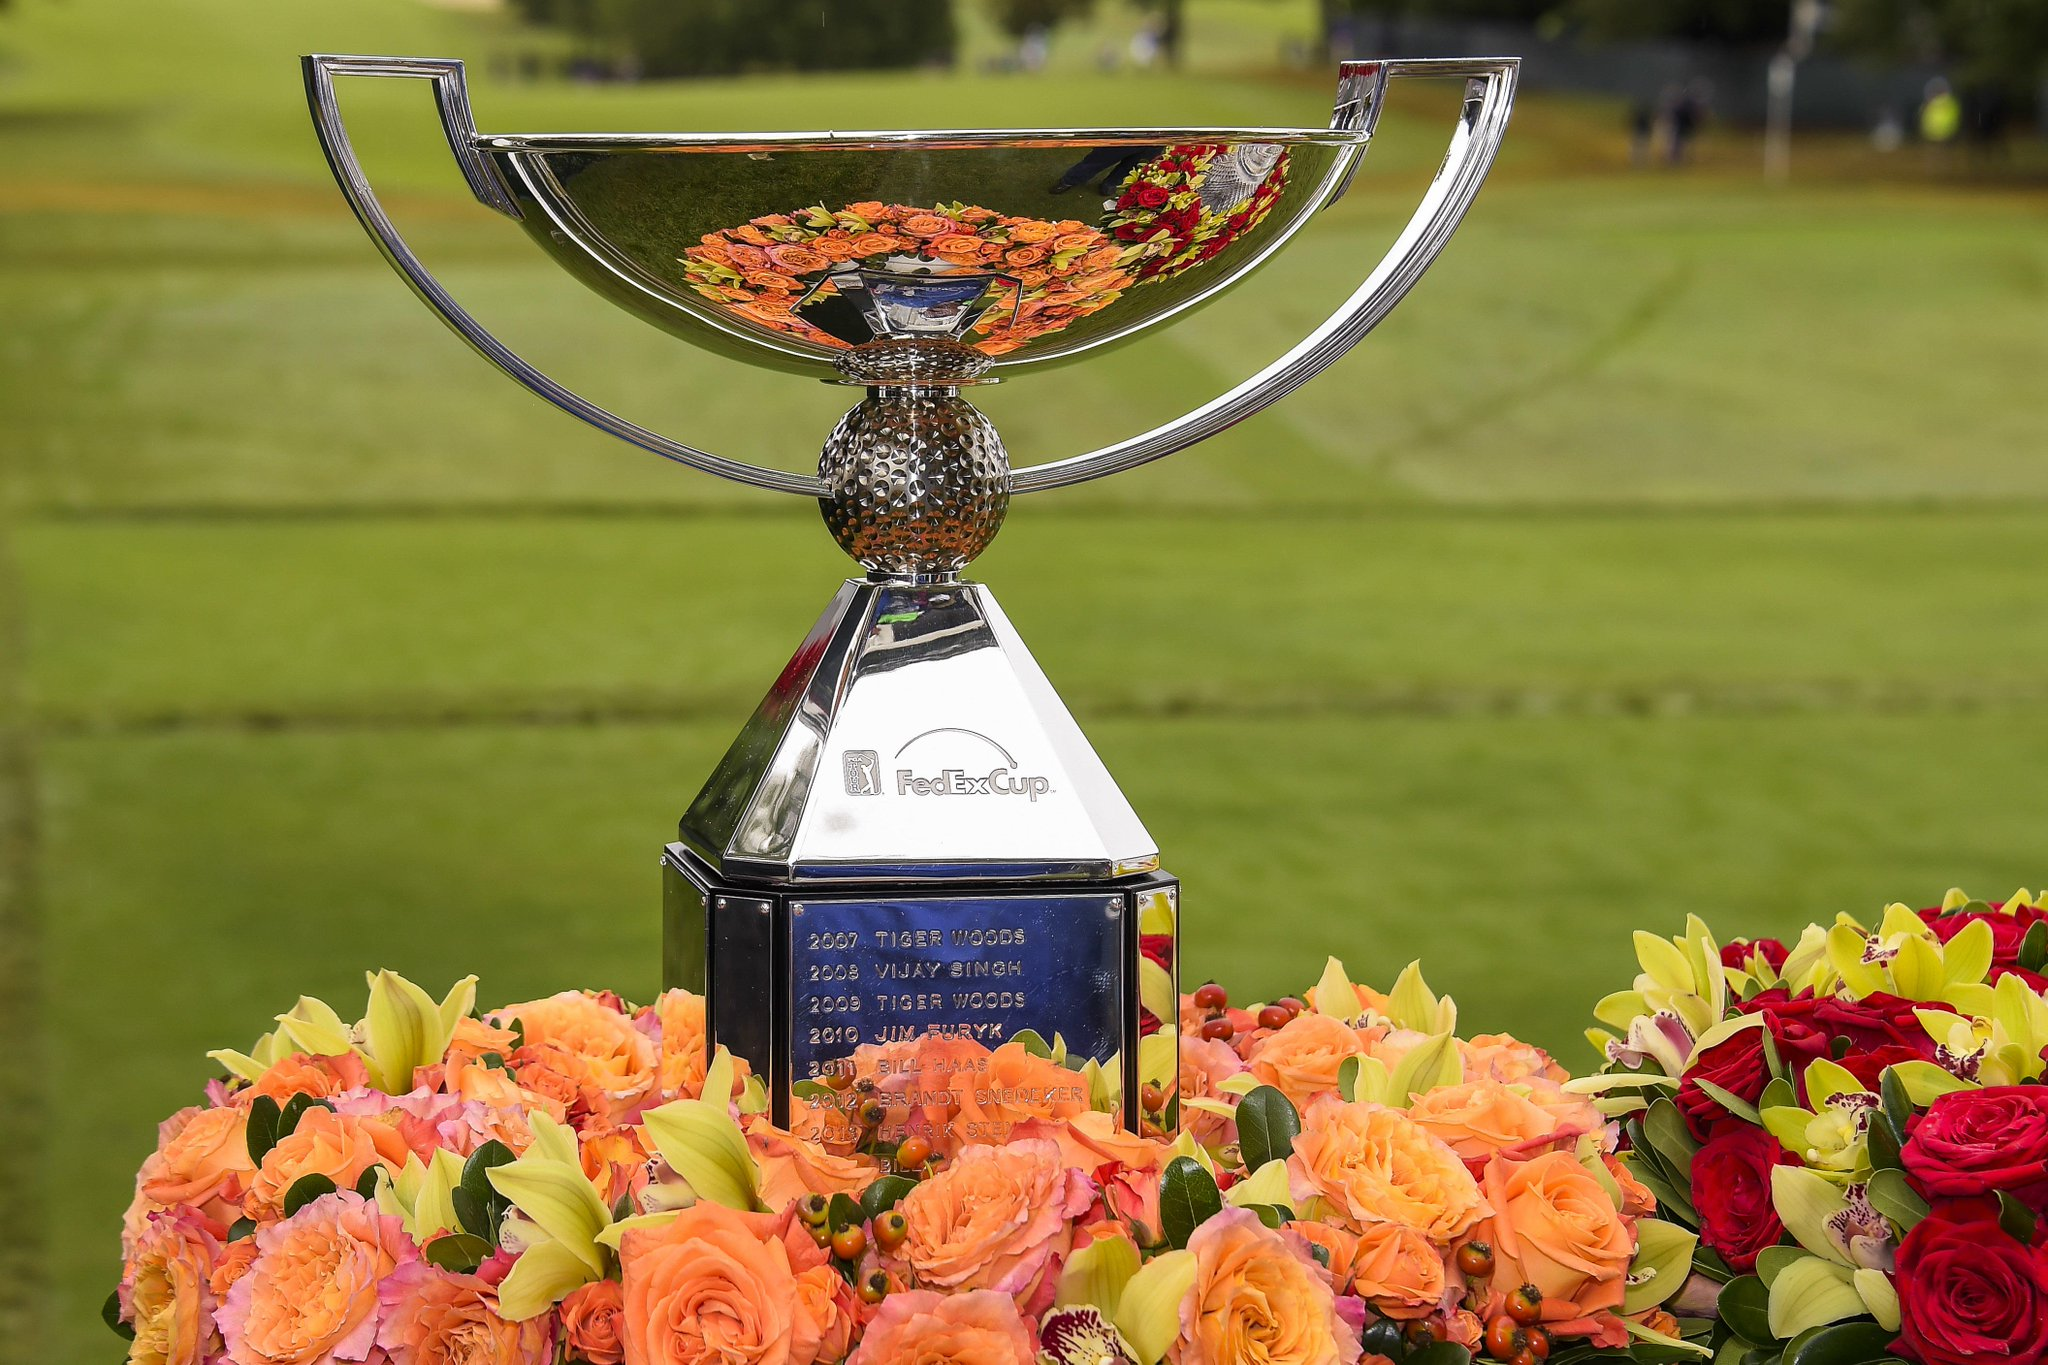 PREVIEW: FedEx Cup to be decided this week at the Tour Championship https://t.co/dqsJgBGGWe https://t.co/LdJpxS6jpn